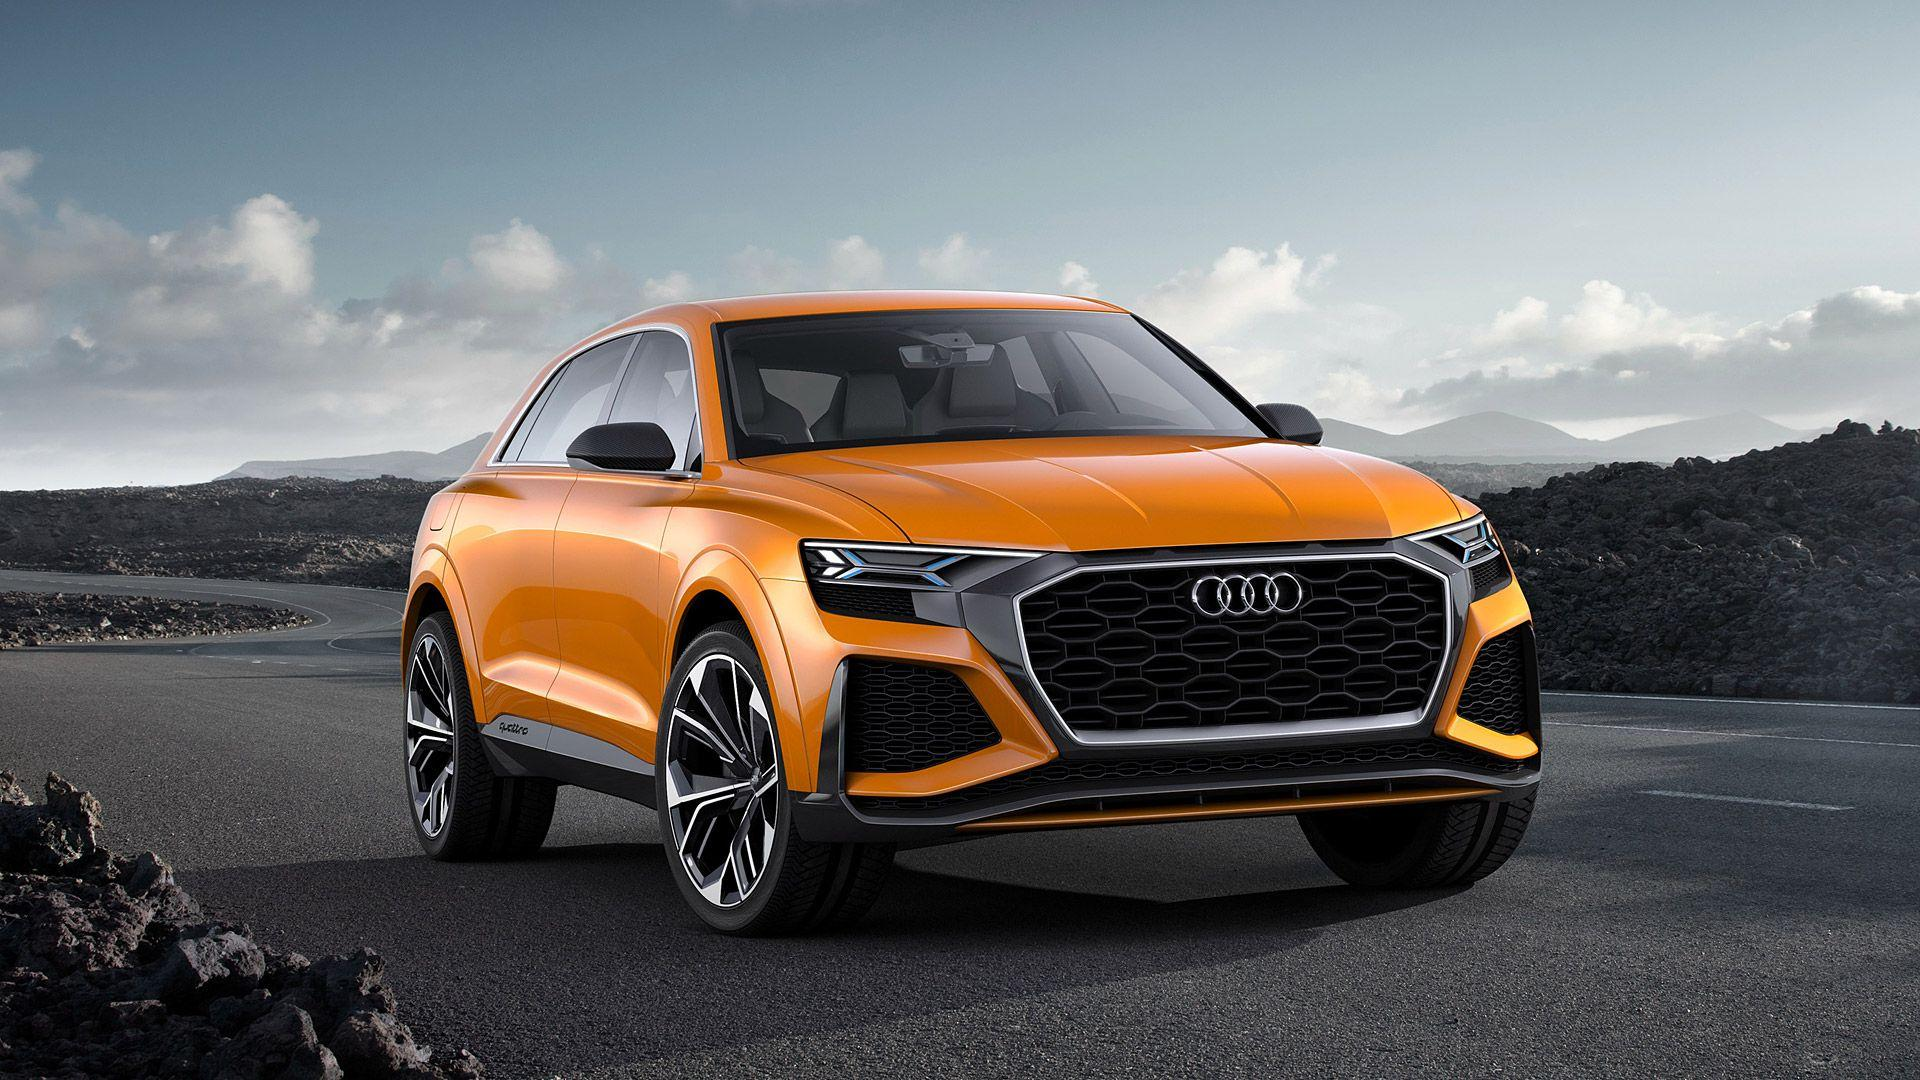 2017 Audi Q8 Sport Concept Wallpapers & HD Image